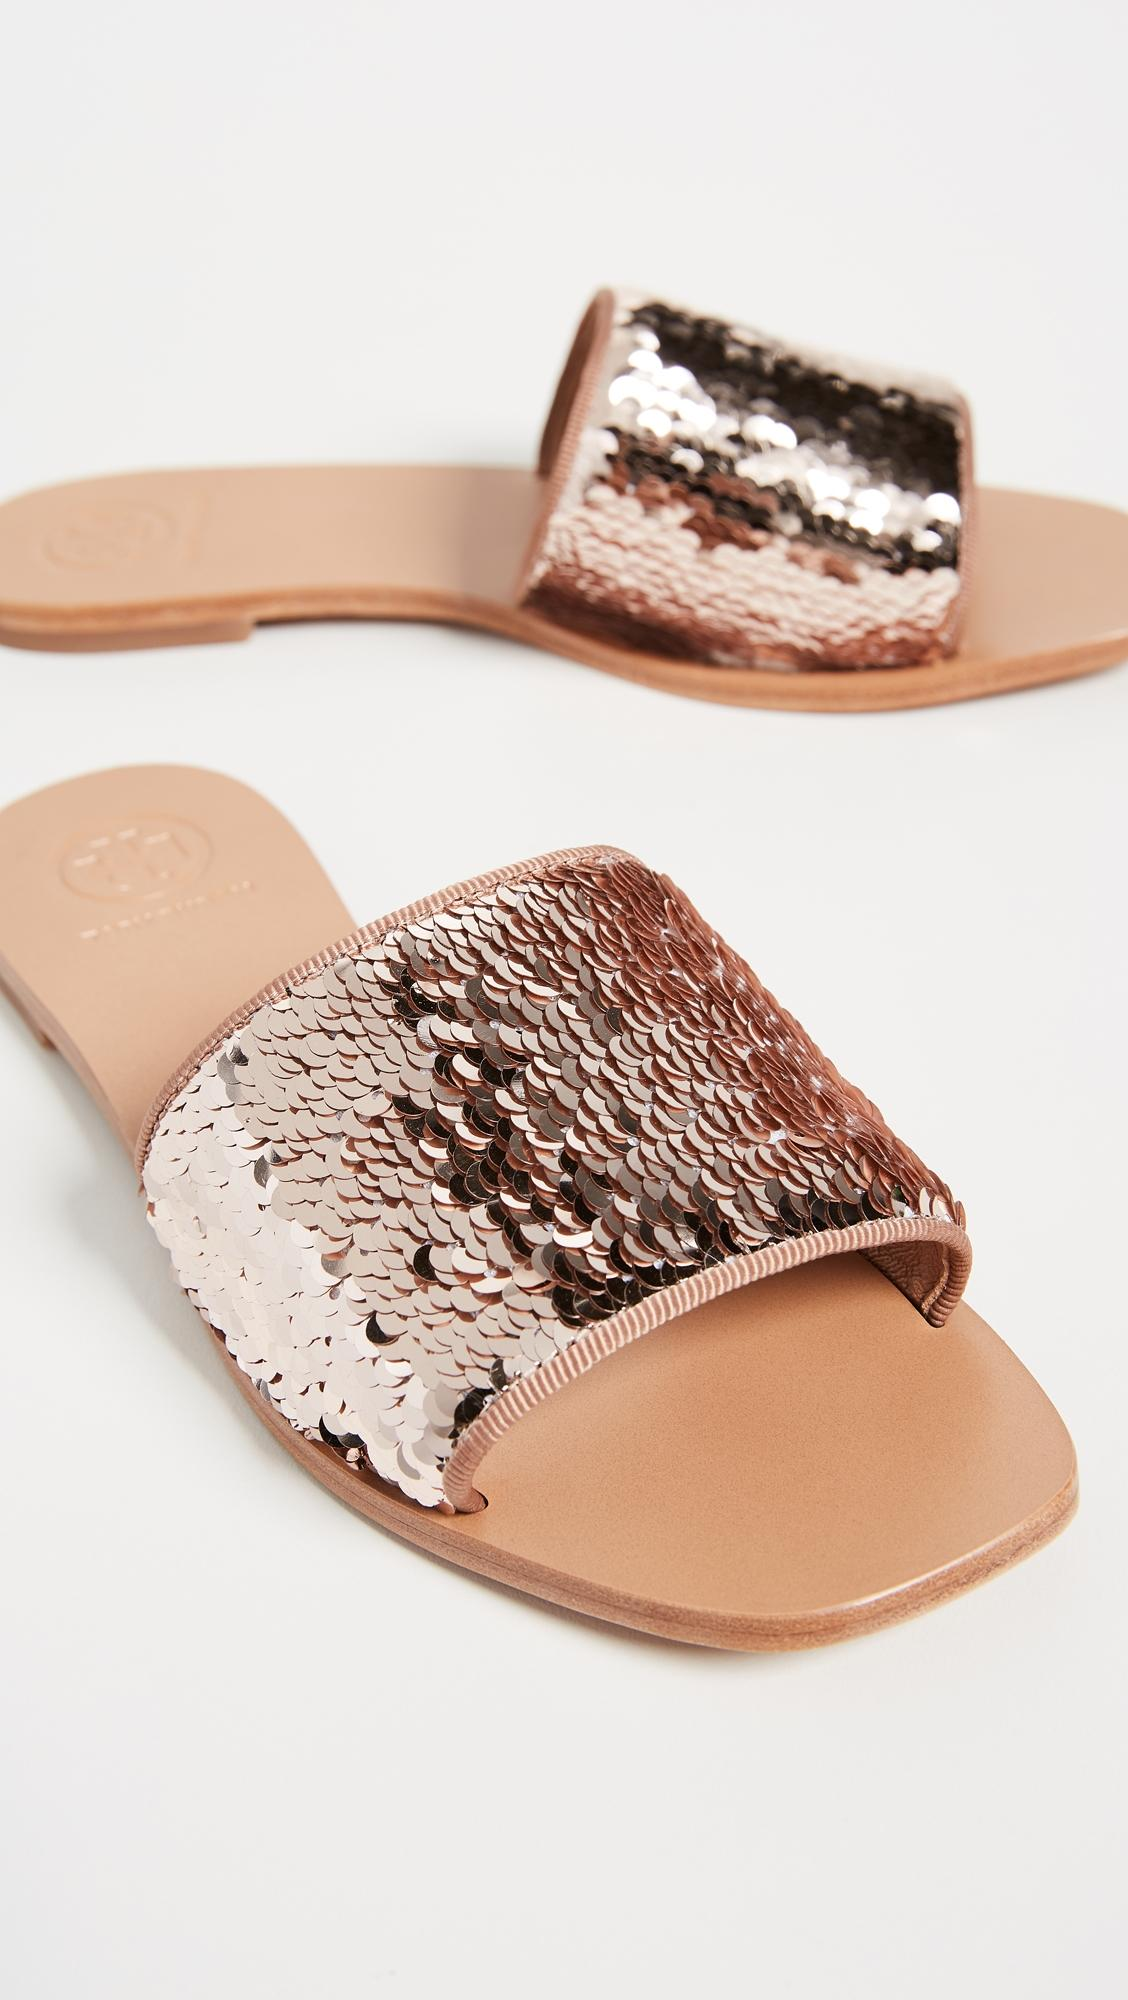 18961adcc627a6 ... Tory Burch Rose Gold New Flats Flats Flats Slides Sandals Size US 8.5  Regular (M ...